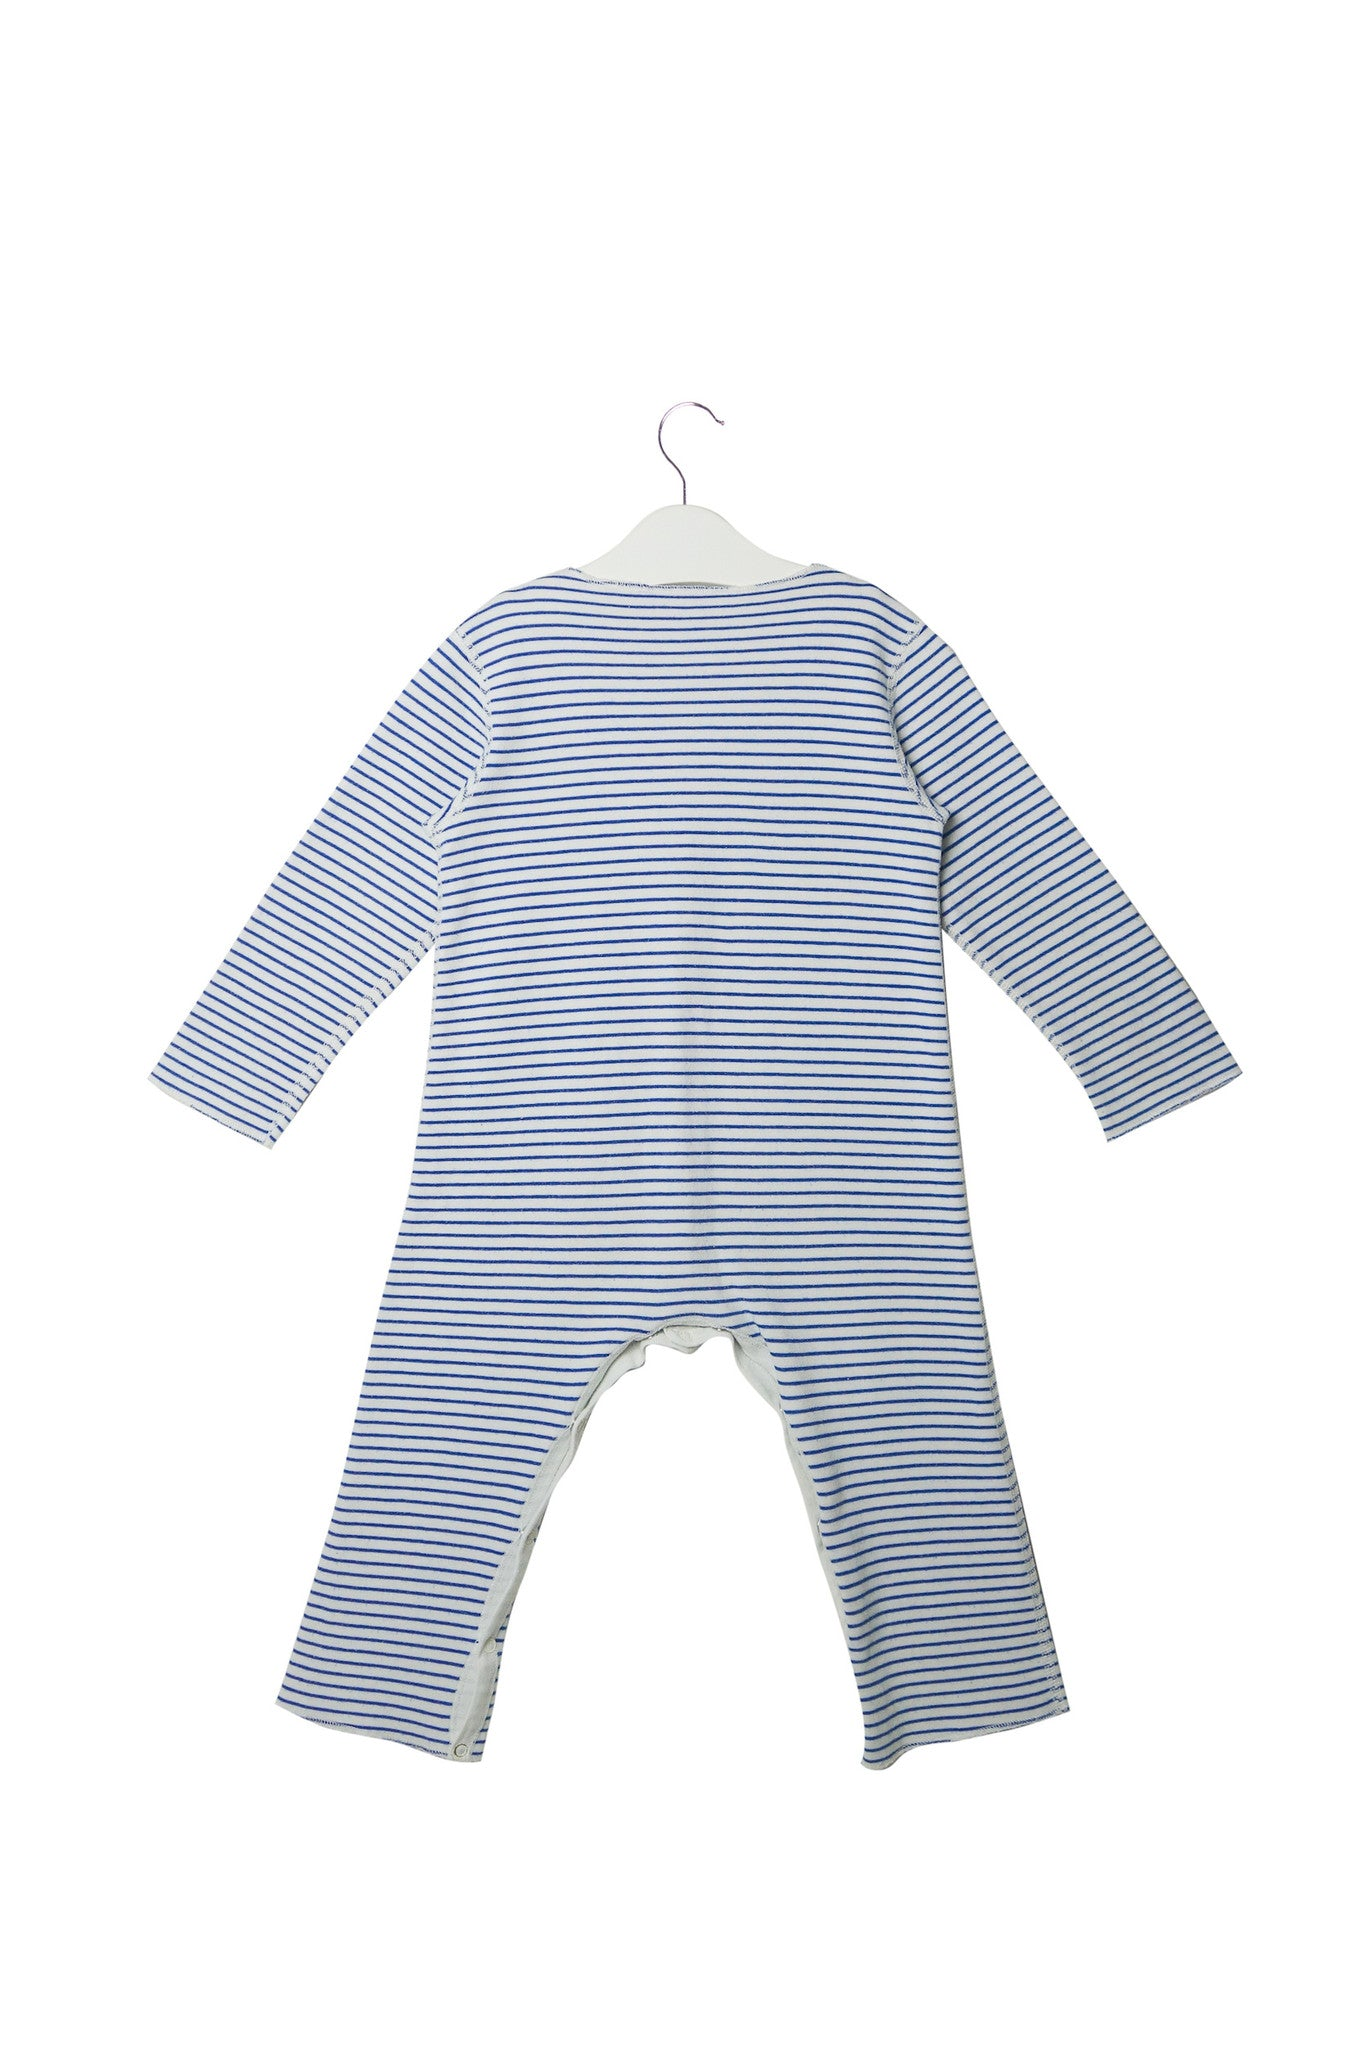 10002996 Petit Bateau kids~Jumpsuit 2T at Retykle